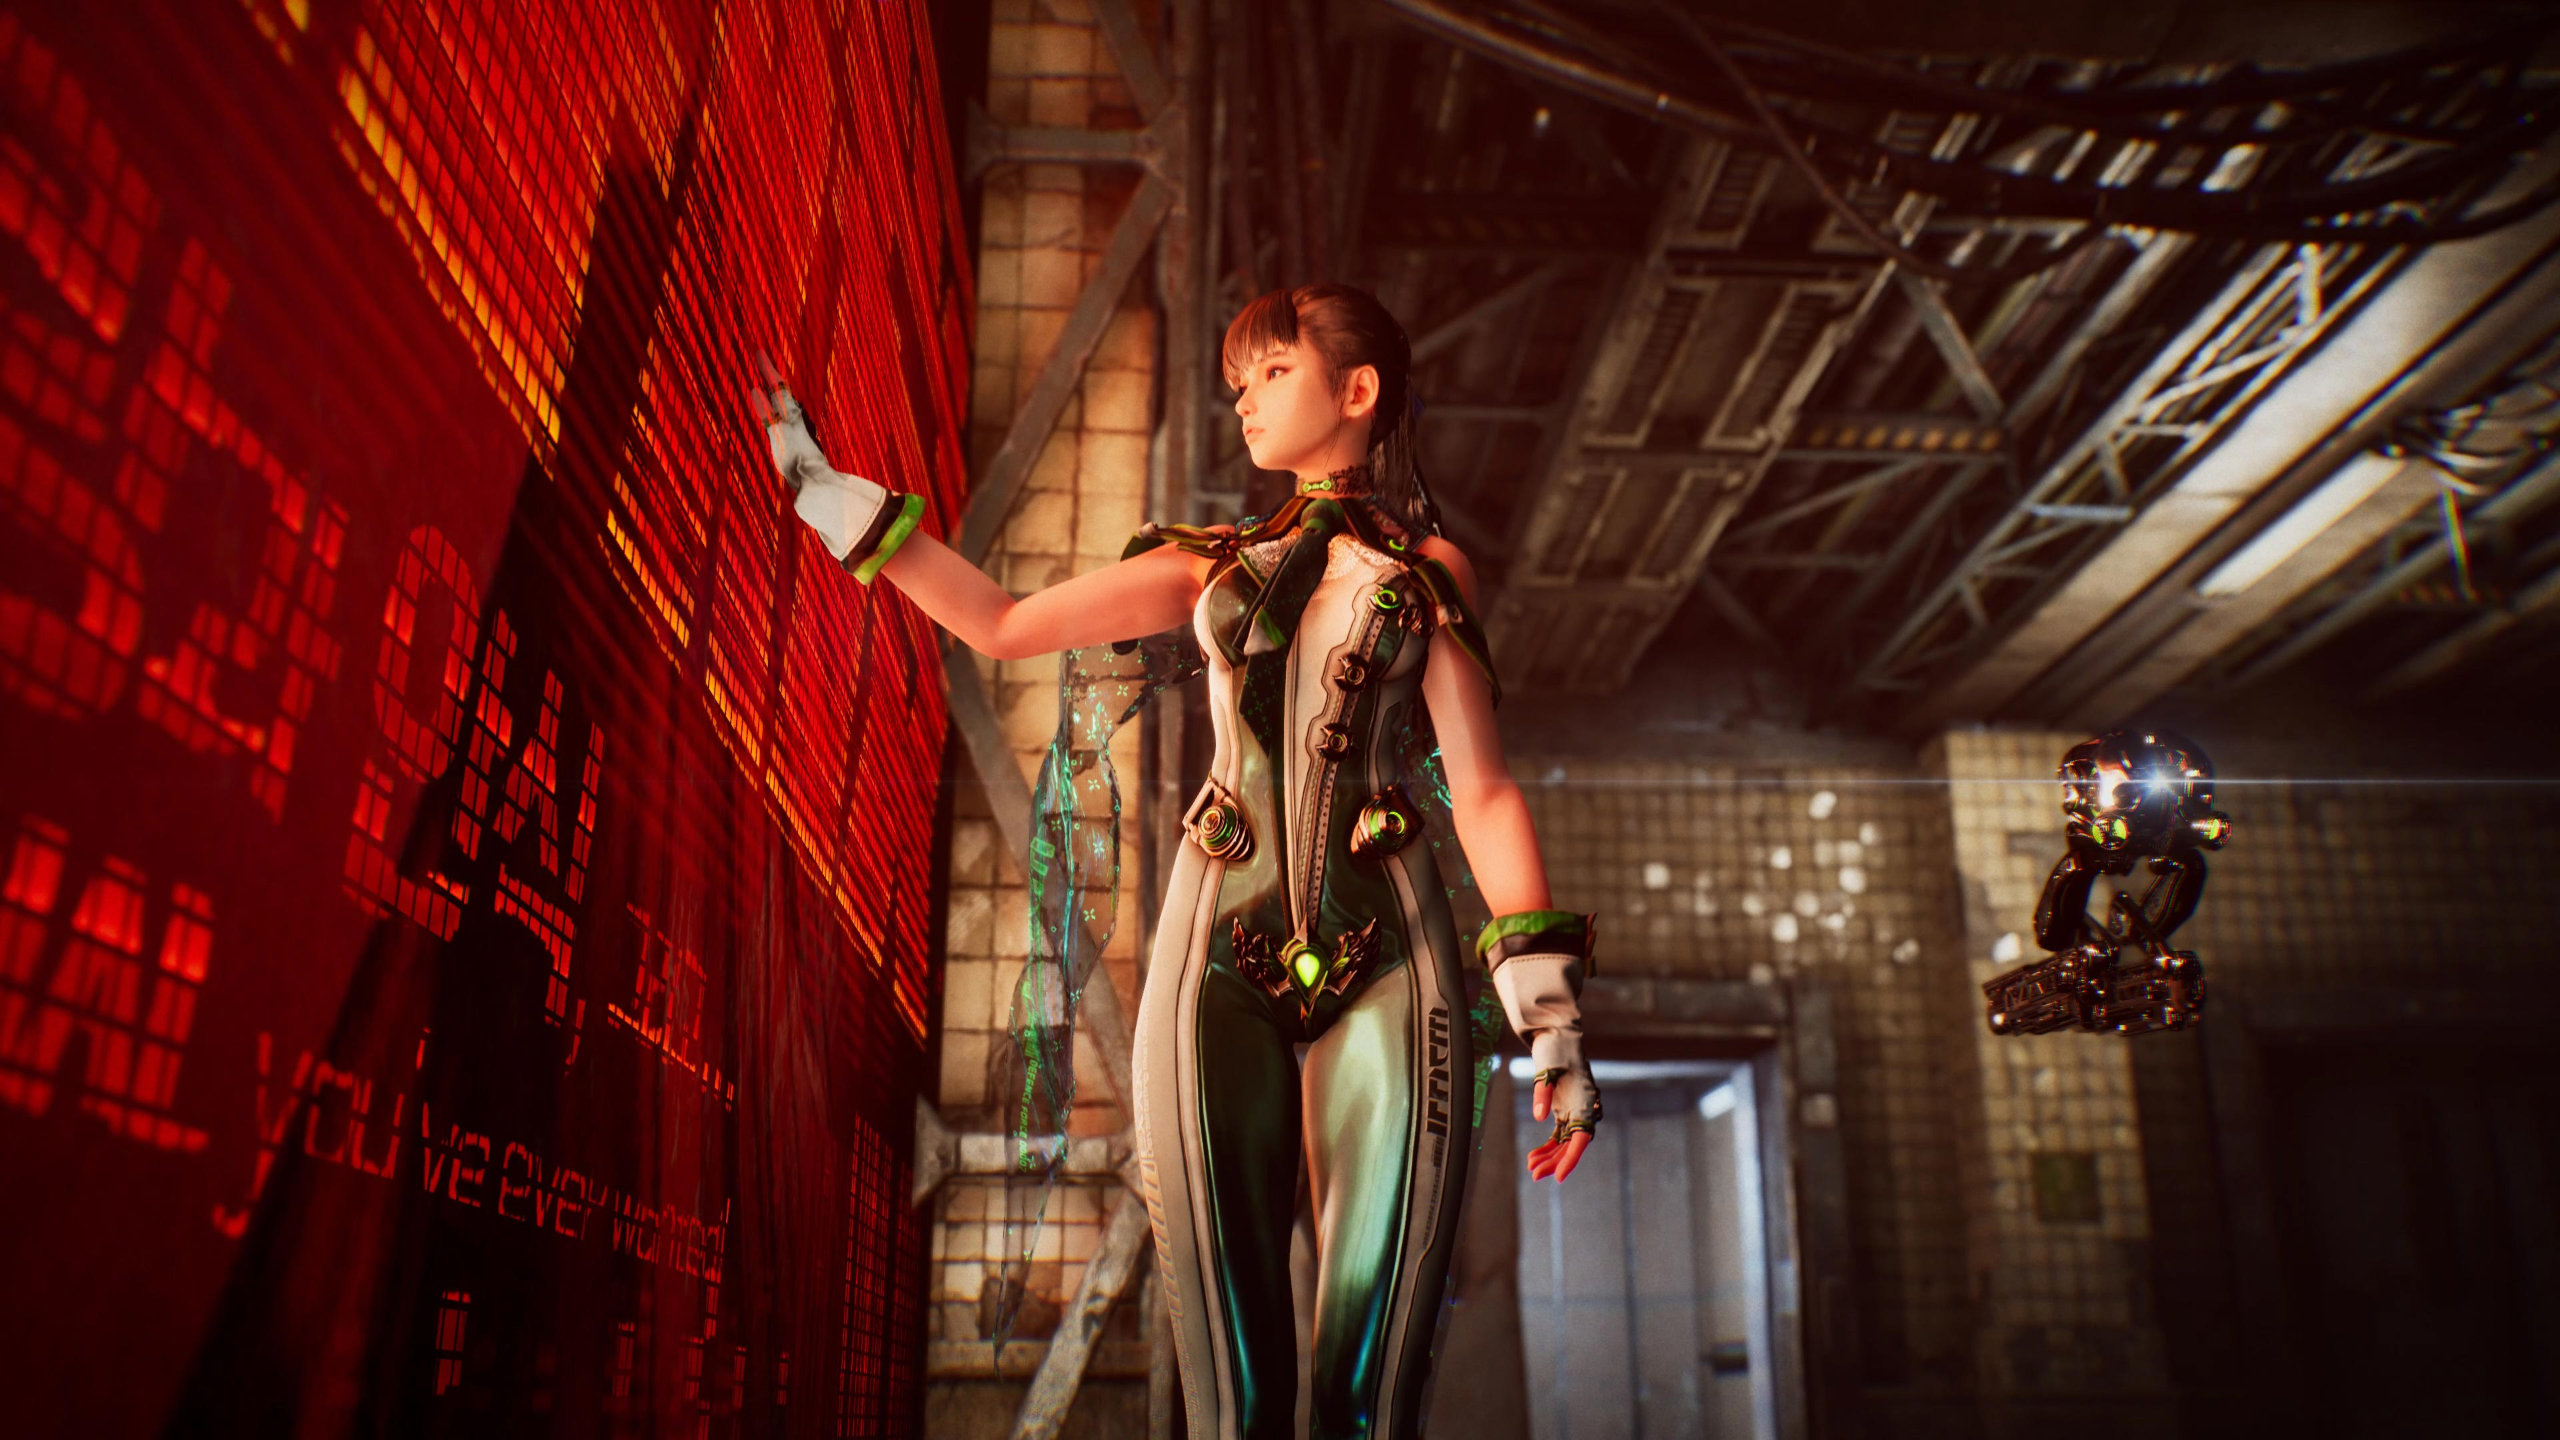 Project Eve Screenshot of a young female trooper in a high tech latex suit standing in a grungy warehouse, placing her hand into a wall of glowing glyphs and symbols.